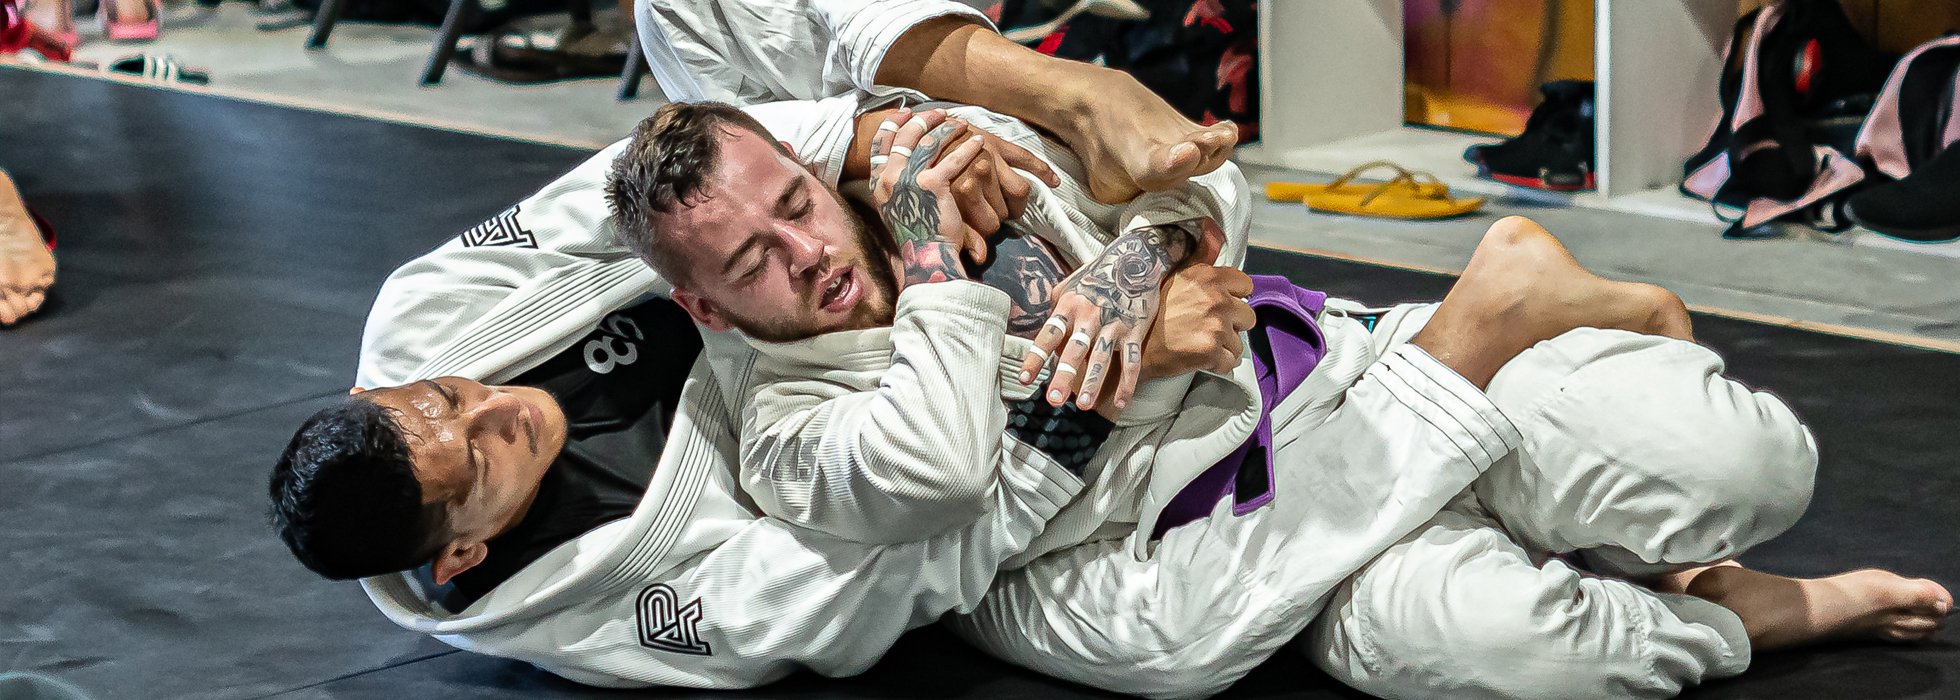 Adult Brazilian Jiu Jitsu Gym in Spring TX, Adult Brazilian Jiu Jitsu Gym near The Woodlands TX, Adult Brazilian Jiu Jitsu Gym near Klein, Adult Brazilian Jiu Jitsu Gym near Tomball TX